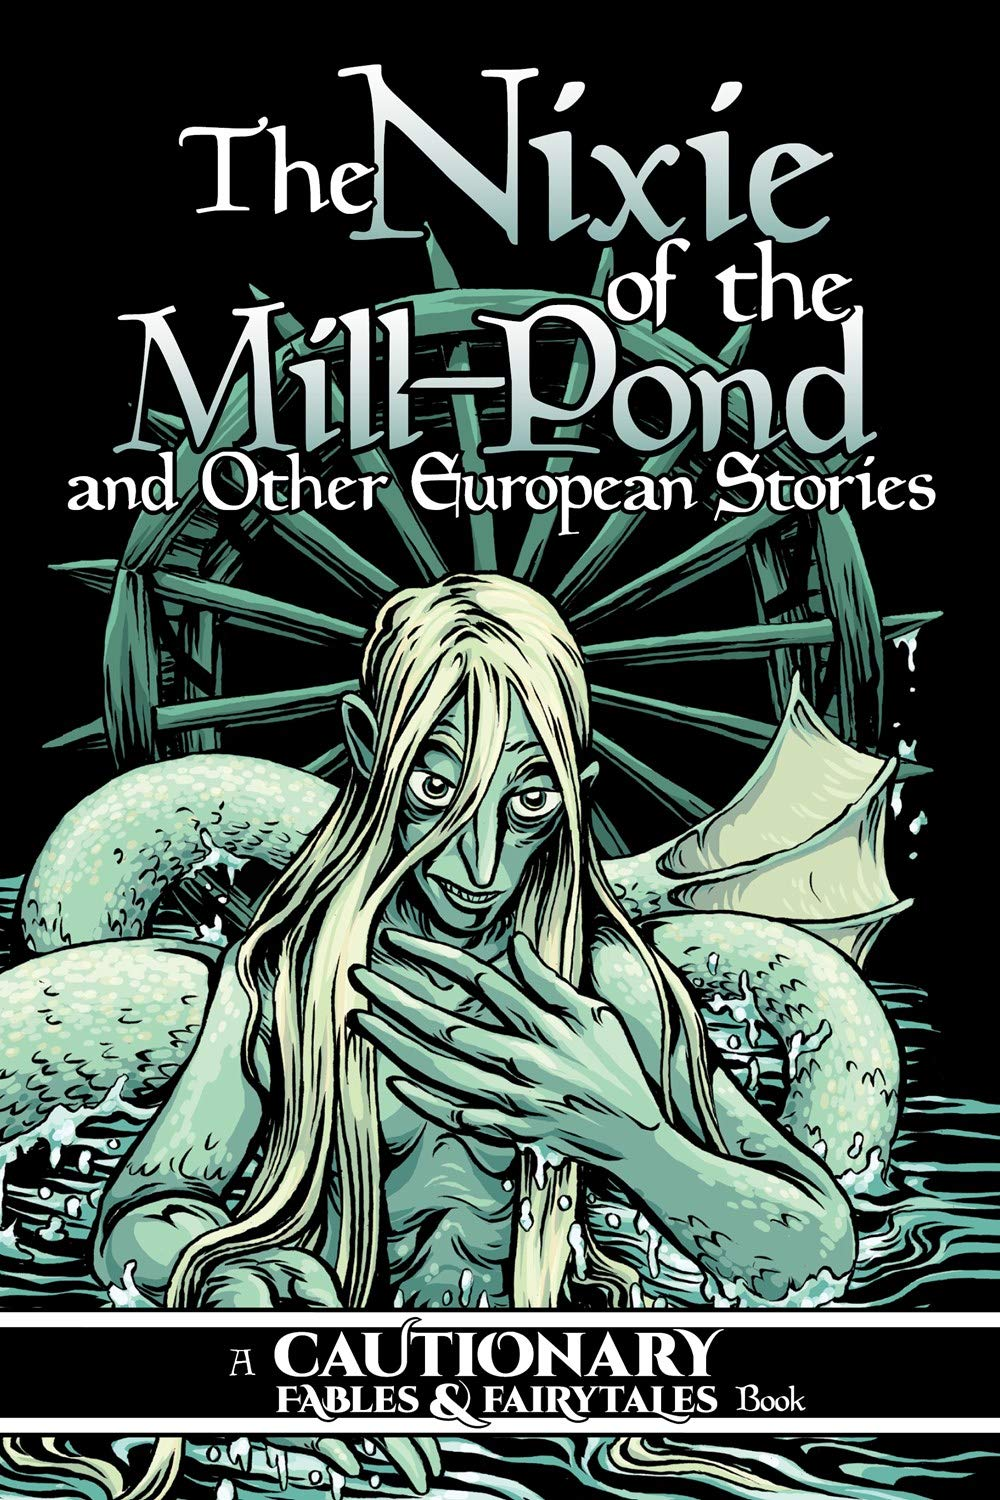 The Nixie of the Mill-Pond and Other European Stories